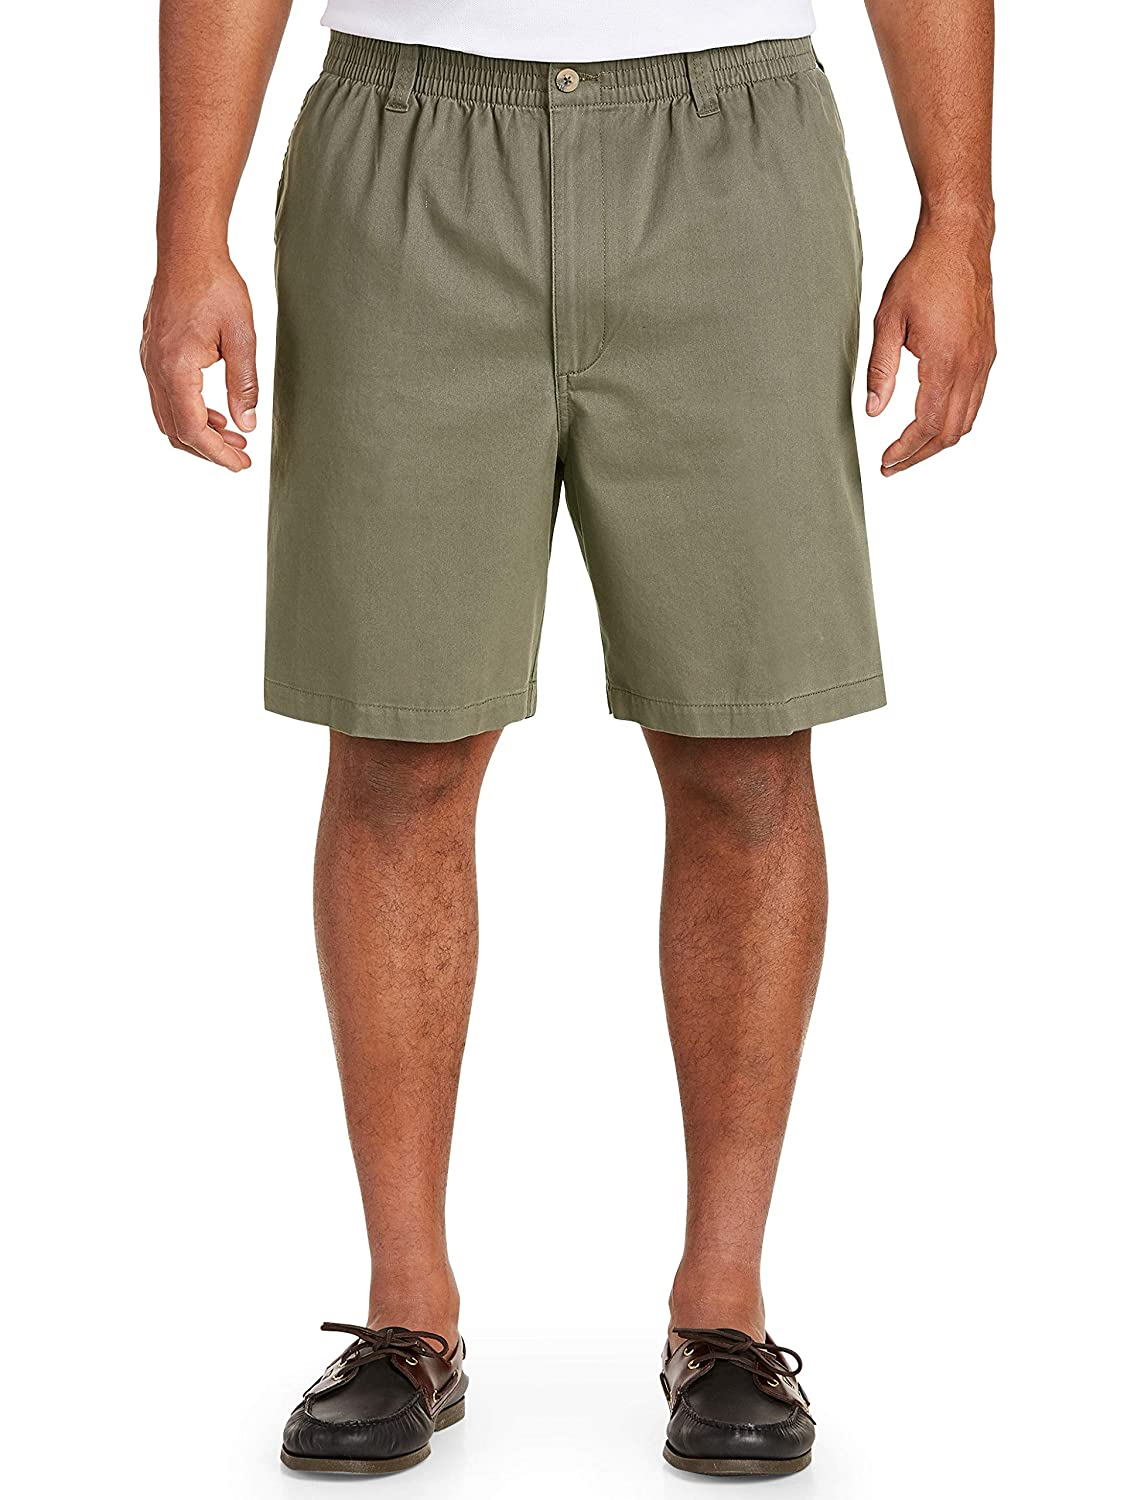 Harbor Bay by DXL Big and Tall Elastic-Waist Twill Shorts-Updated Fit Olive 3X-Tall